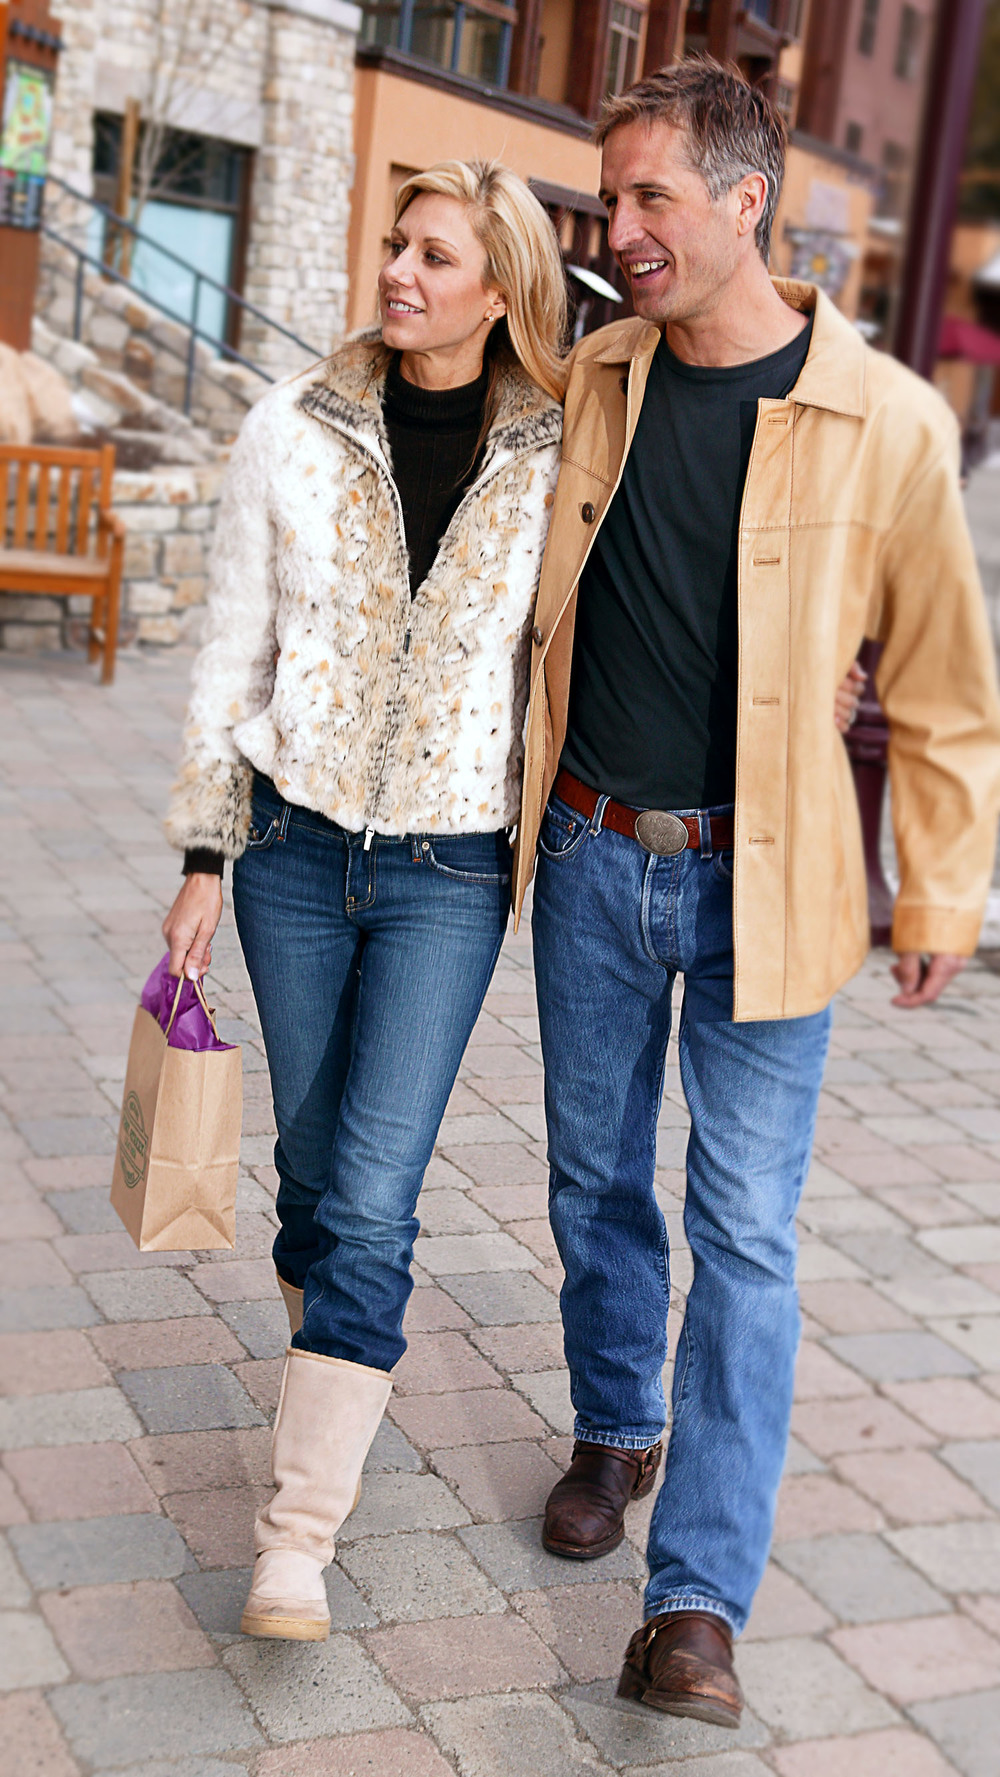 Couple Shopping in Leather-626 RGB.jpg